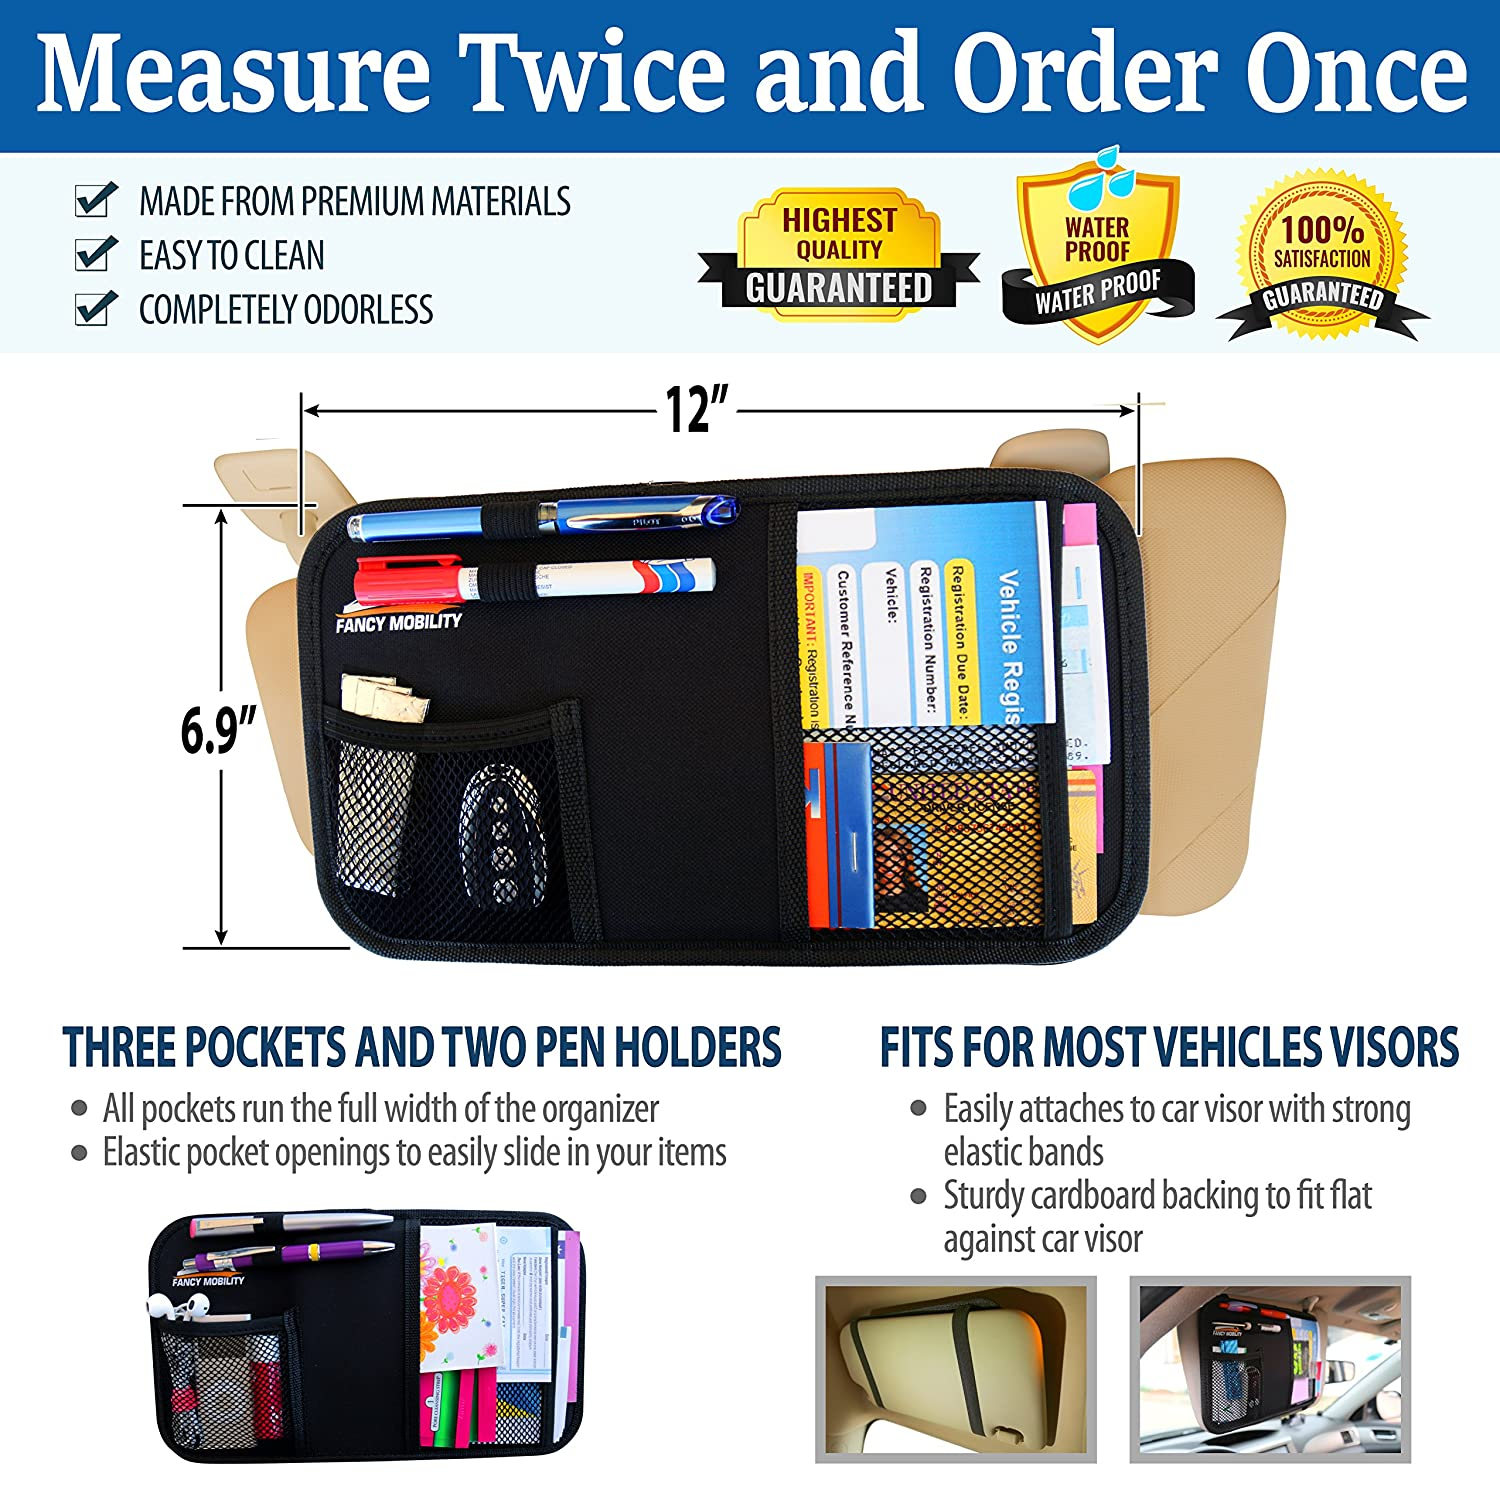 Fancy Mobility Car Sun Visor Organizer 25 Pack Car 5Year Warranty SUV Registration /& Insurance Storage Pouch Truck Auto Accessories Document Holder Road Trip Essentials Gift for Any Driver